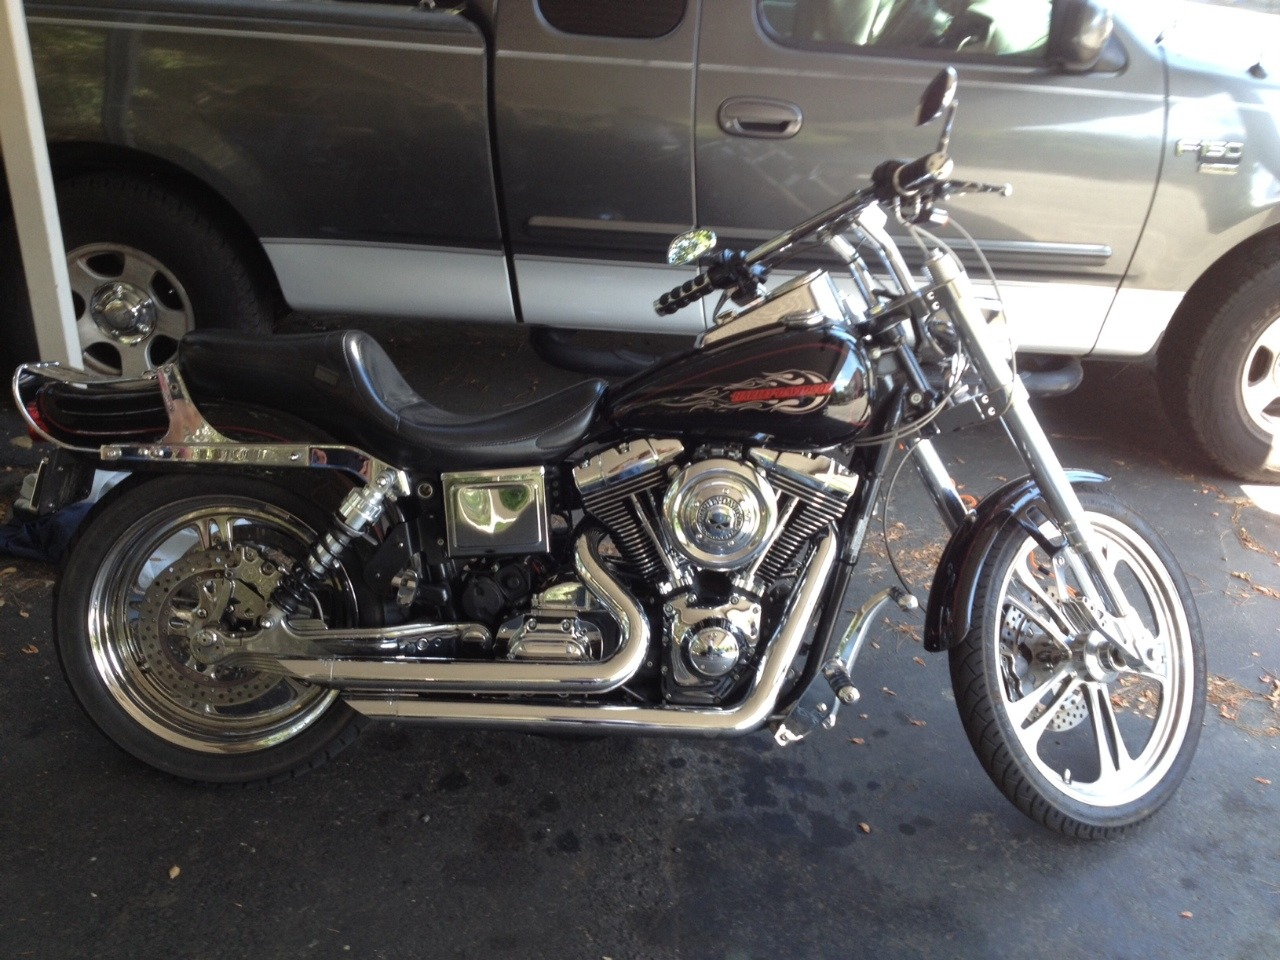 1999 Harley-Davidson Dyna Wide Glide CVO, motorcycle listing